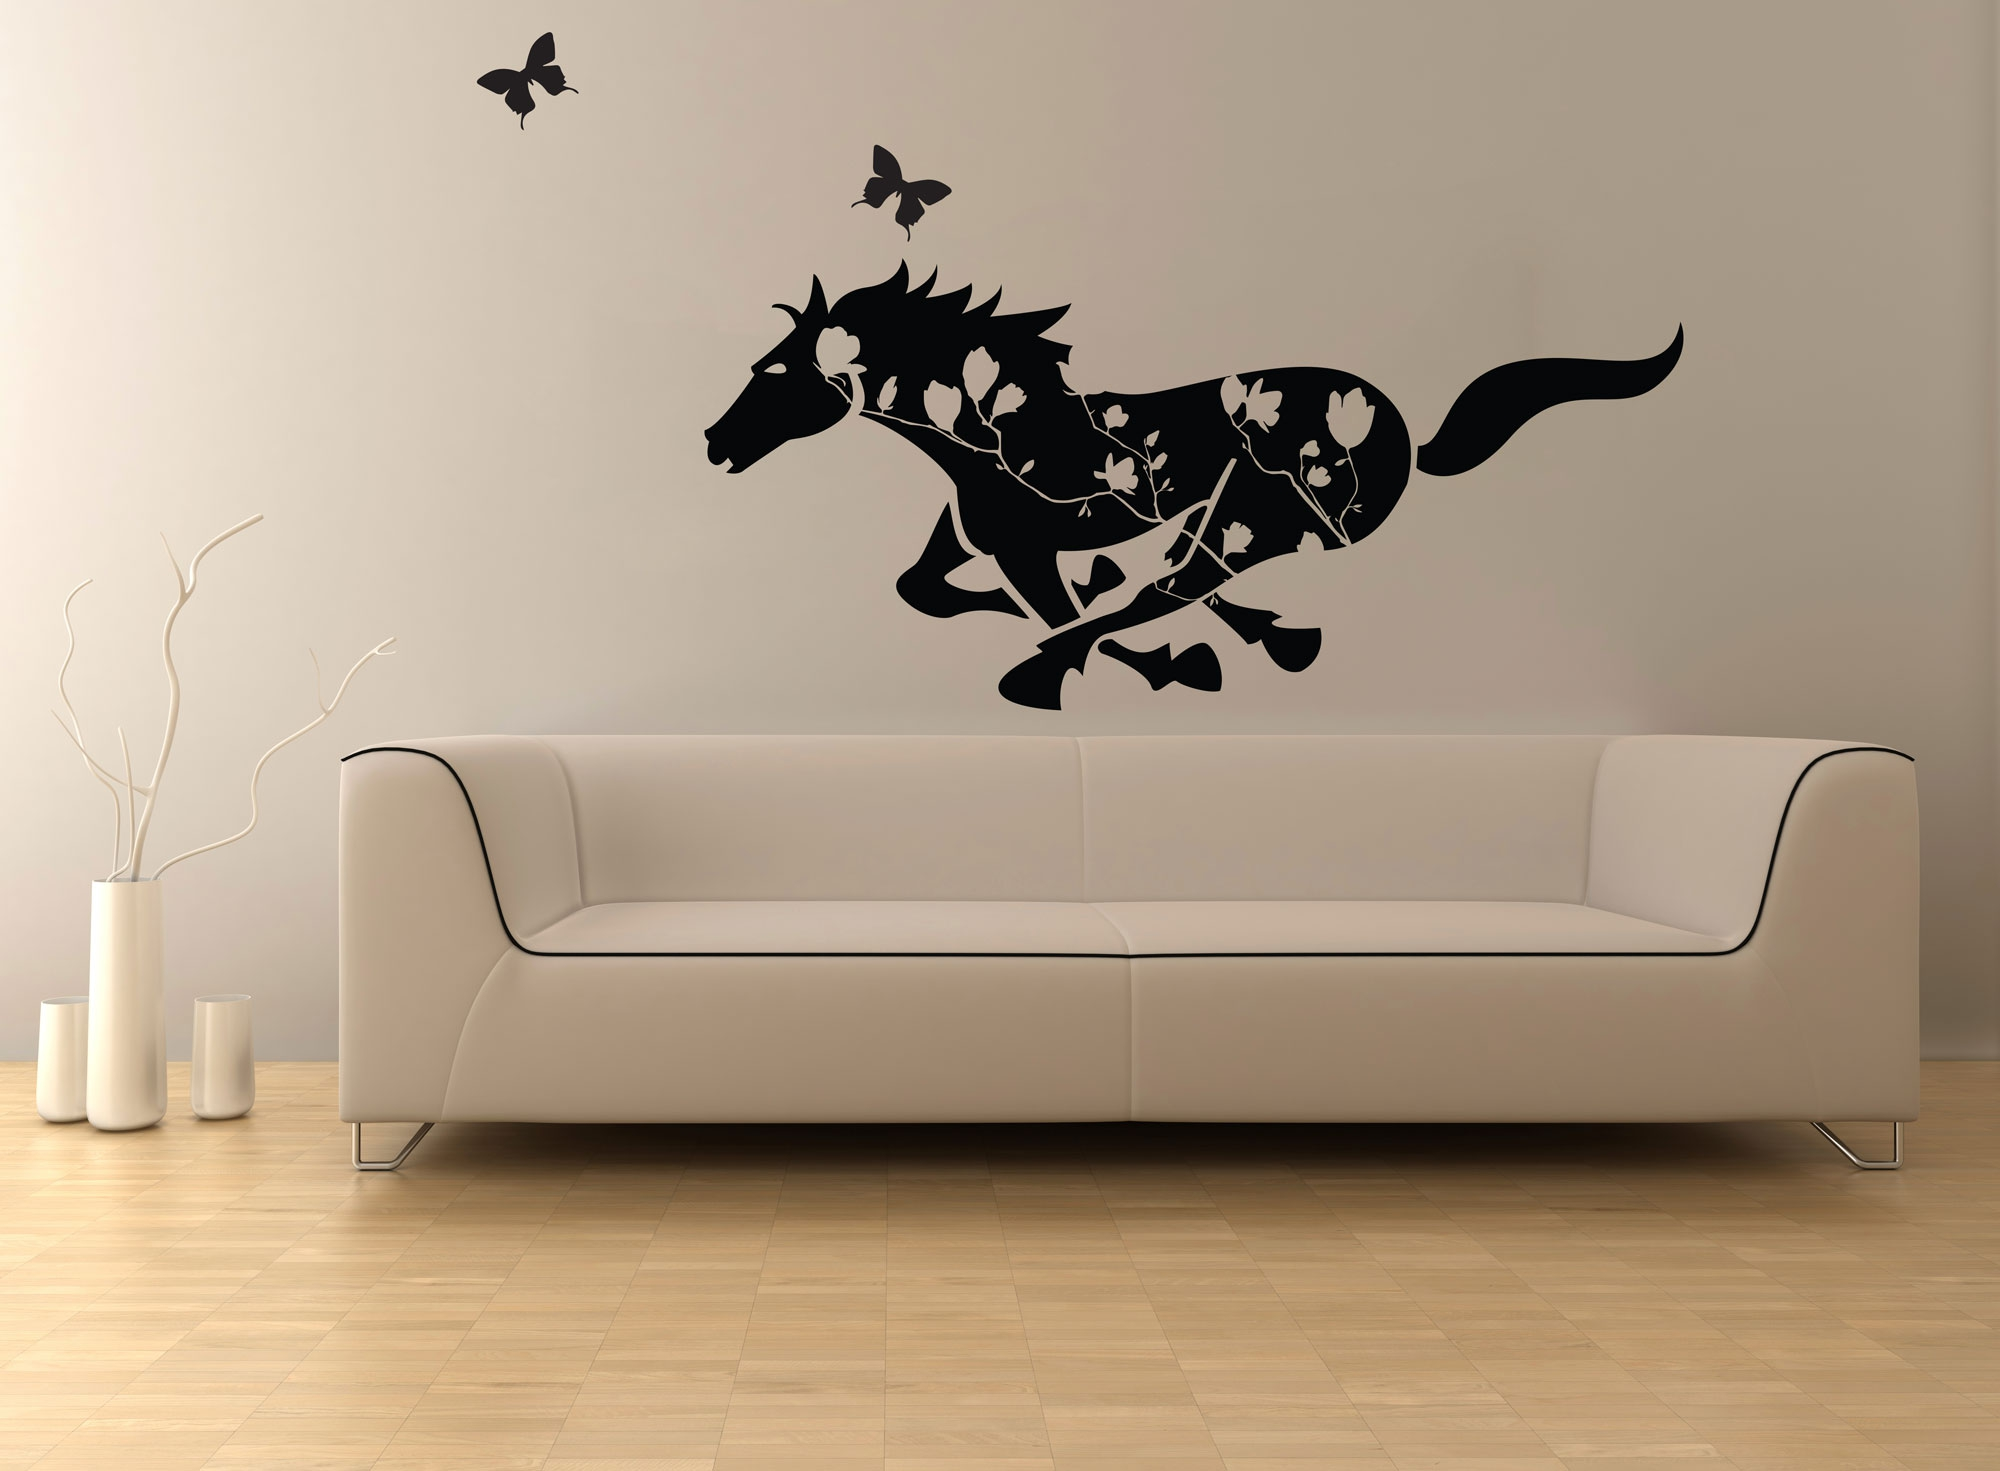 Circuit Board Tree Vinyl Wall Art Graphic Stickers Decals Galloping Horse In Blooms Removable Feature Decal Sticker Ozdeco T S Polonaiz